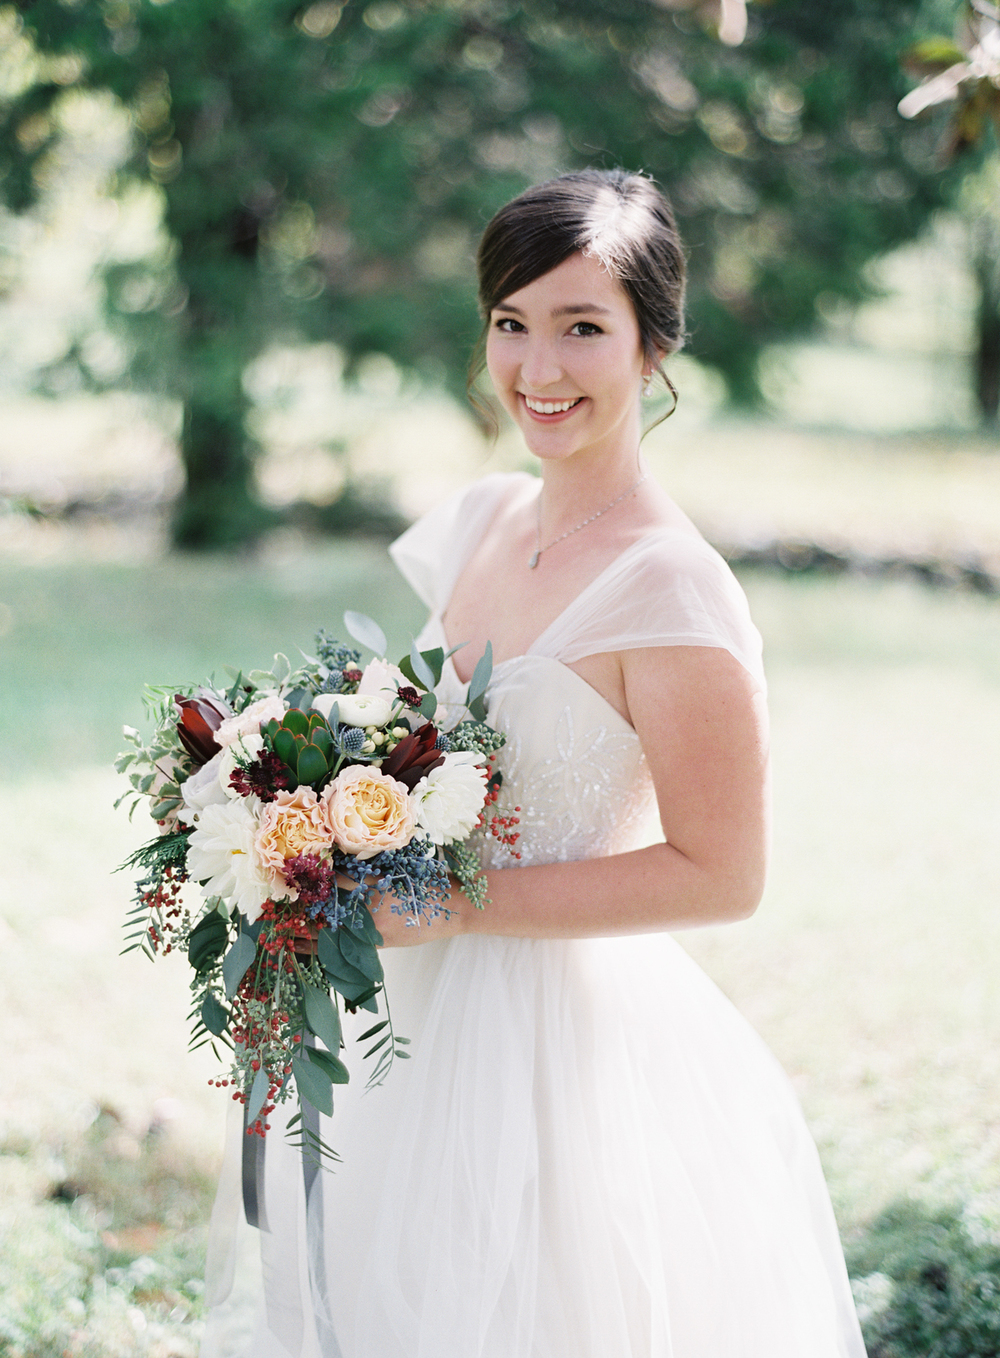 Organic, natural bridal bouquet with roses, berries, and protea // Nashville Wedding Florist